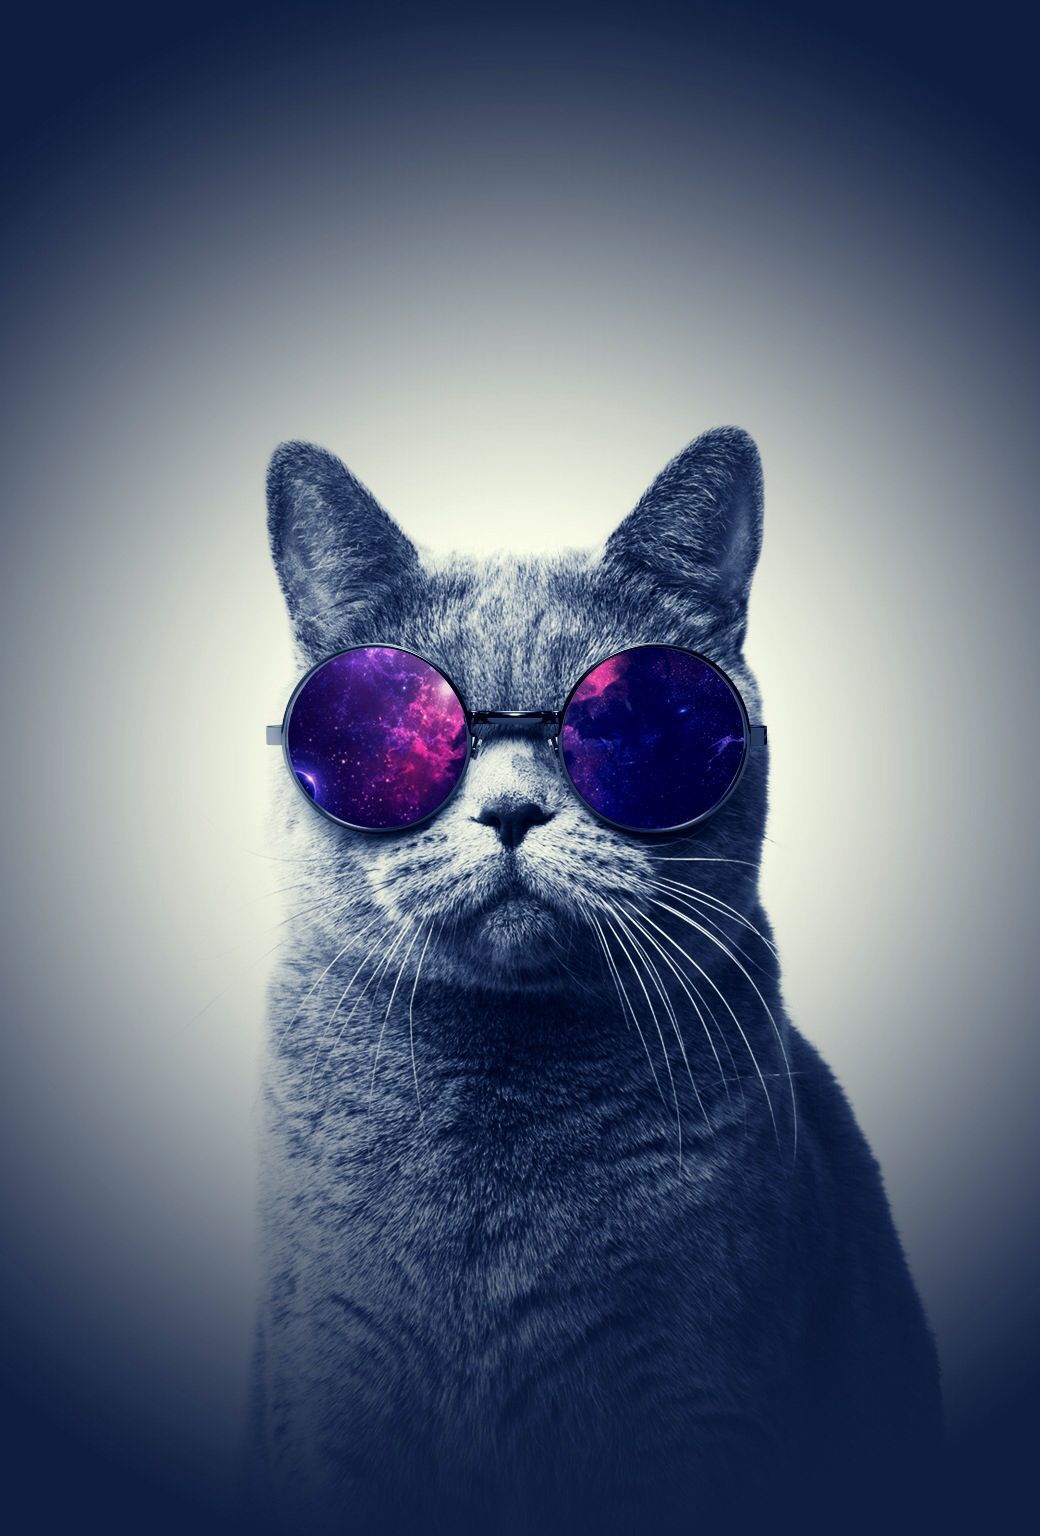 Cool Cat Iphone Wallpapers Top Free Cool Cat Iphone Backgrounds Wallpaperaccess